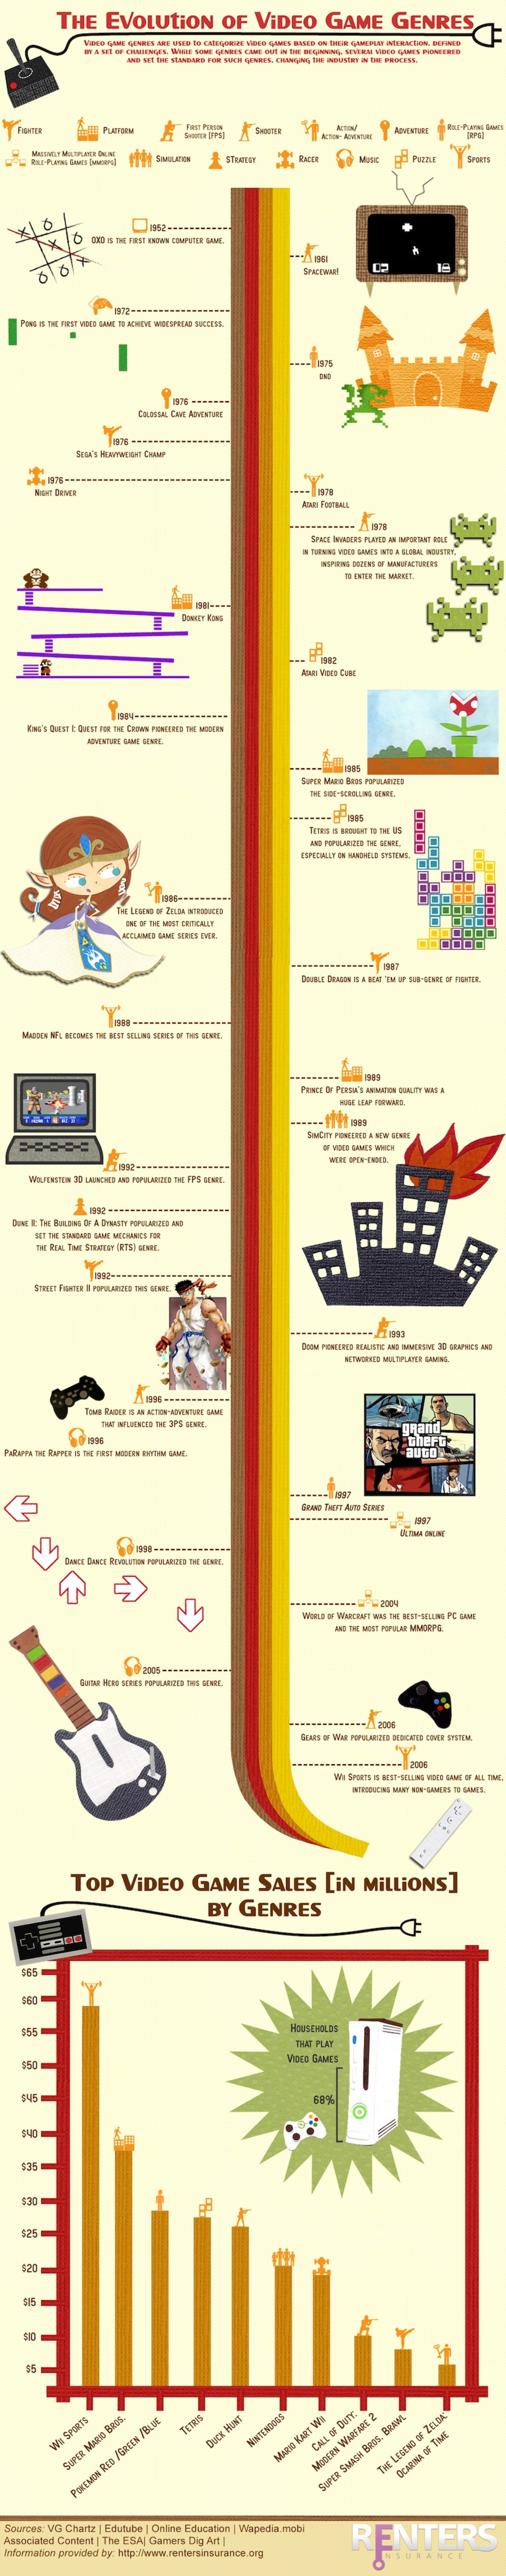 The Evolution of Video Game Genres Infographic